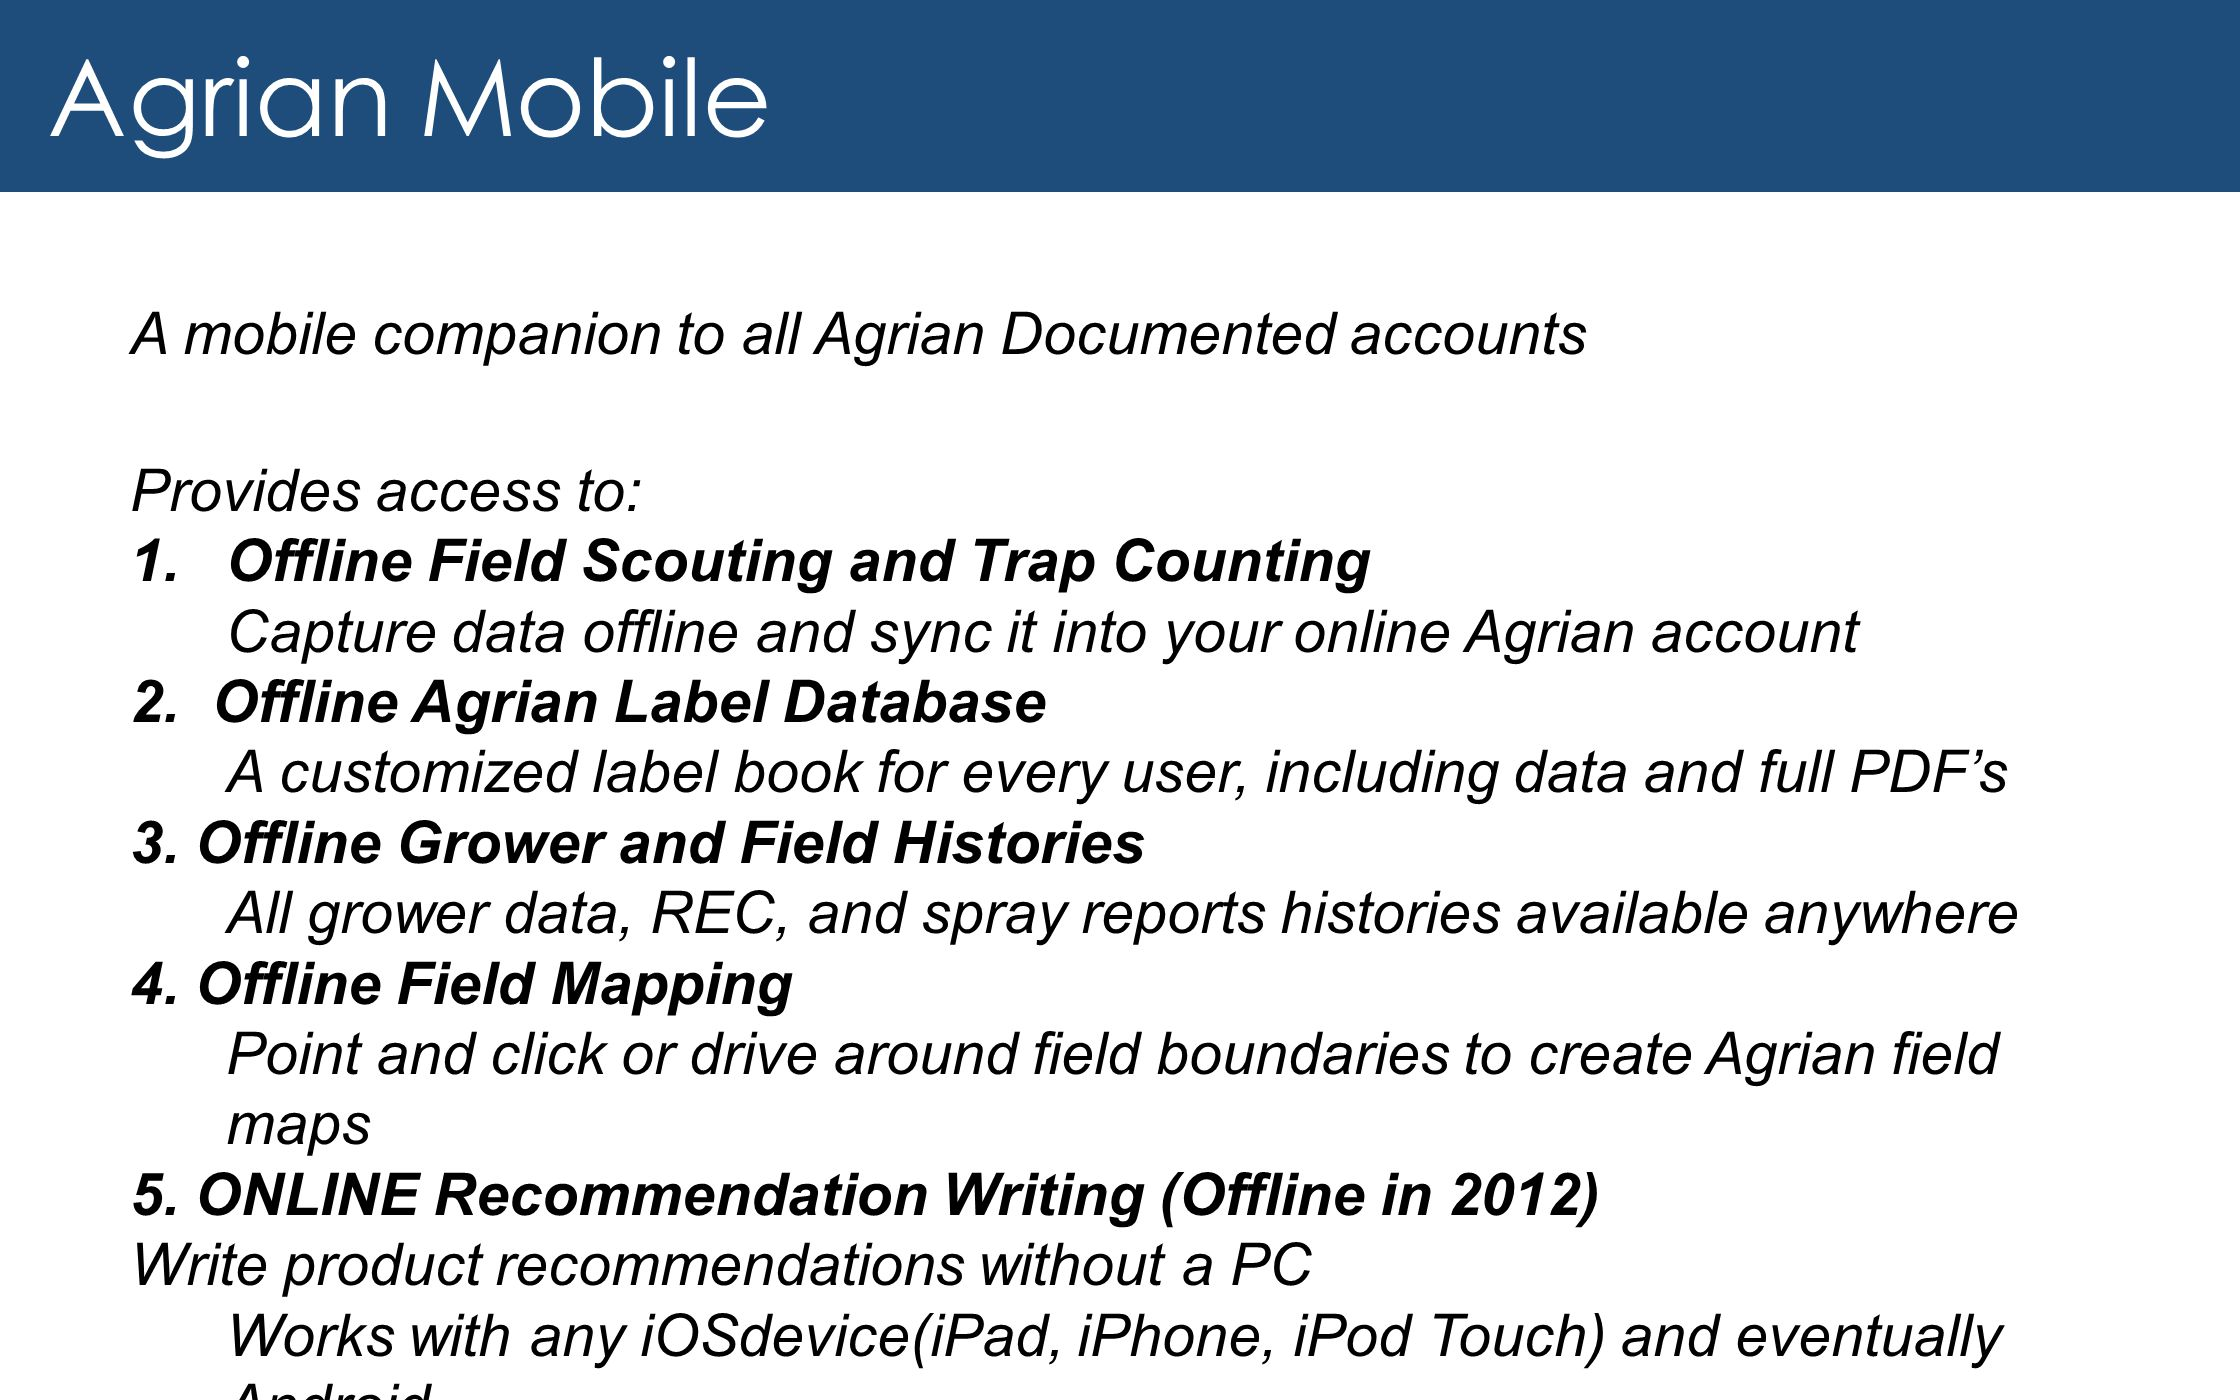 Agrian Mobile A mobile companion to all Agrian Documented accounts